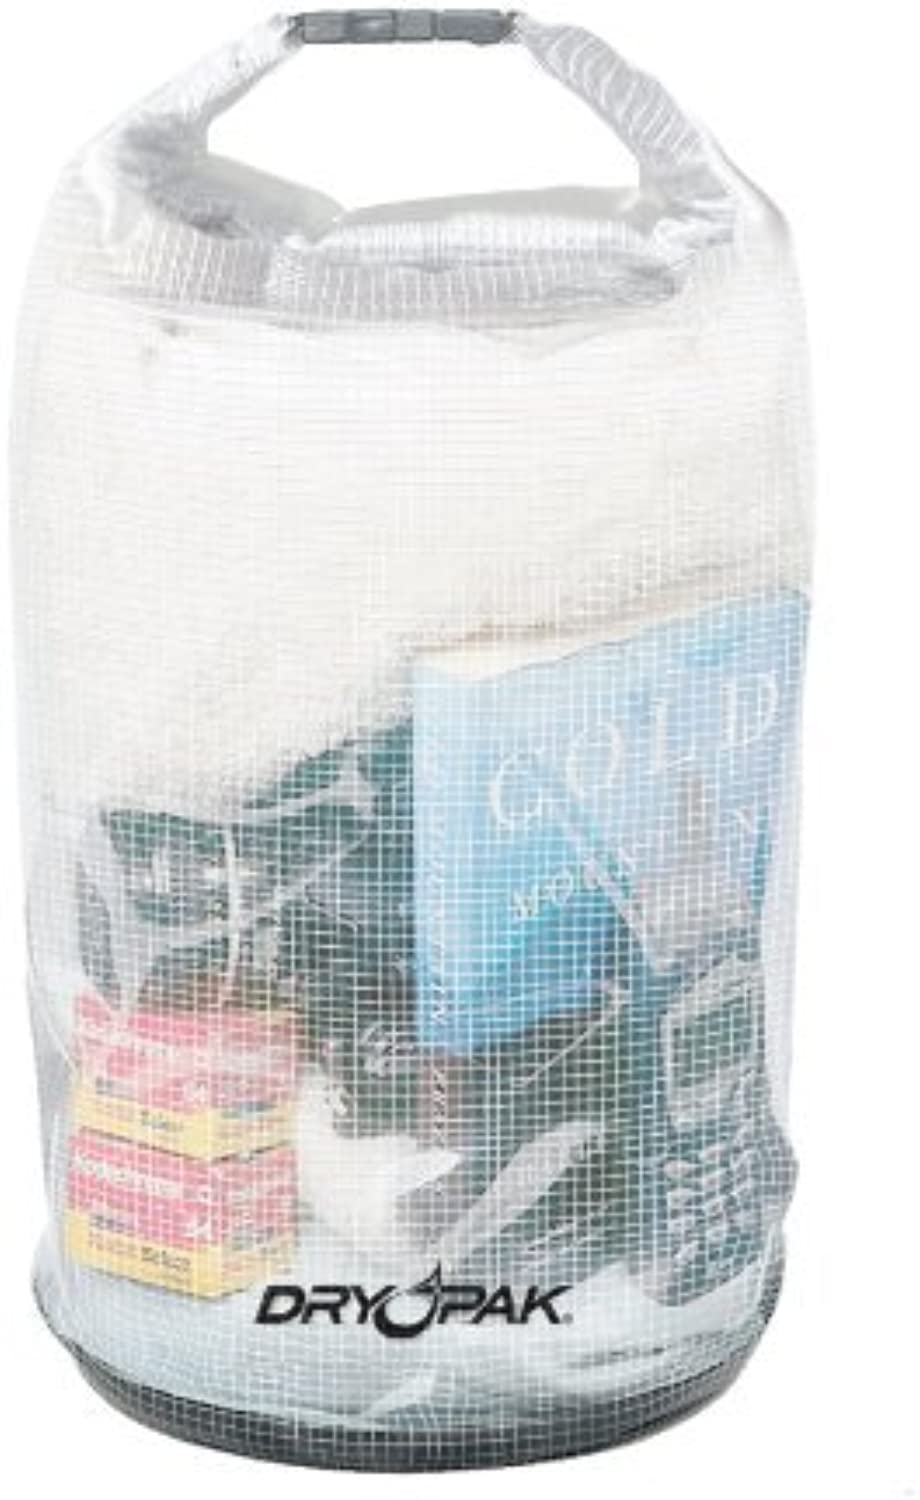 DRY PAK WB3 Roll Top Dry Gear Bag, Reinforced Clear, 9.5 X 16 by Kwik Tek